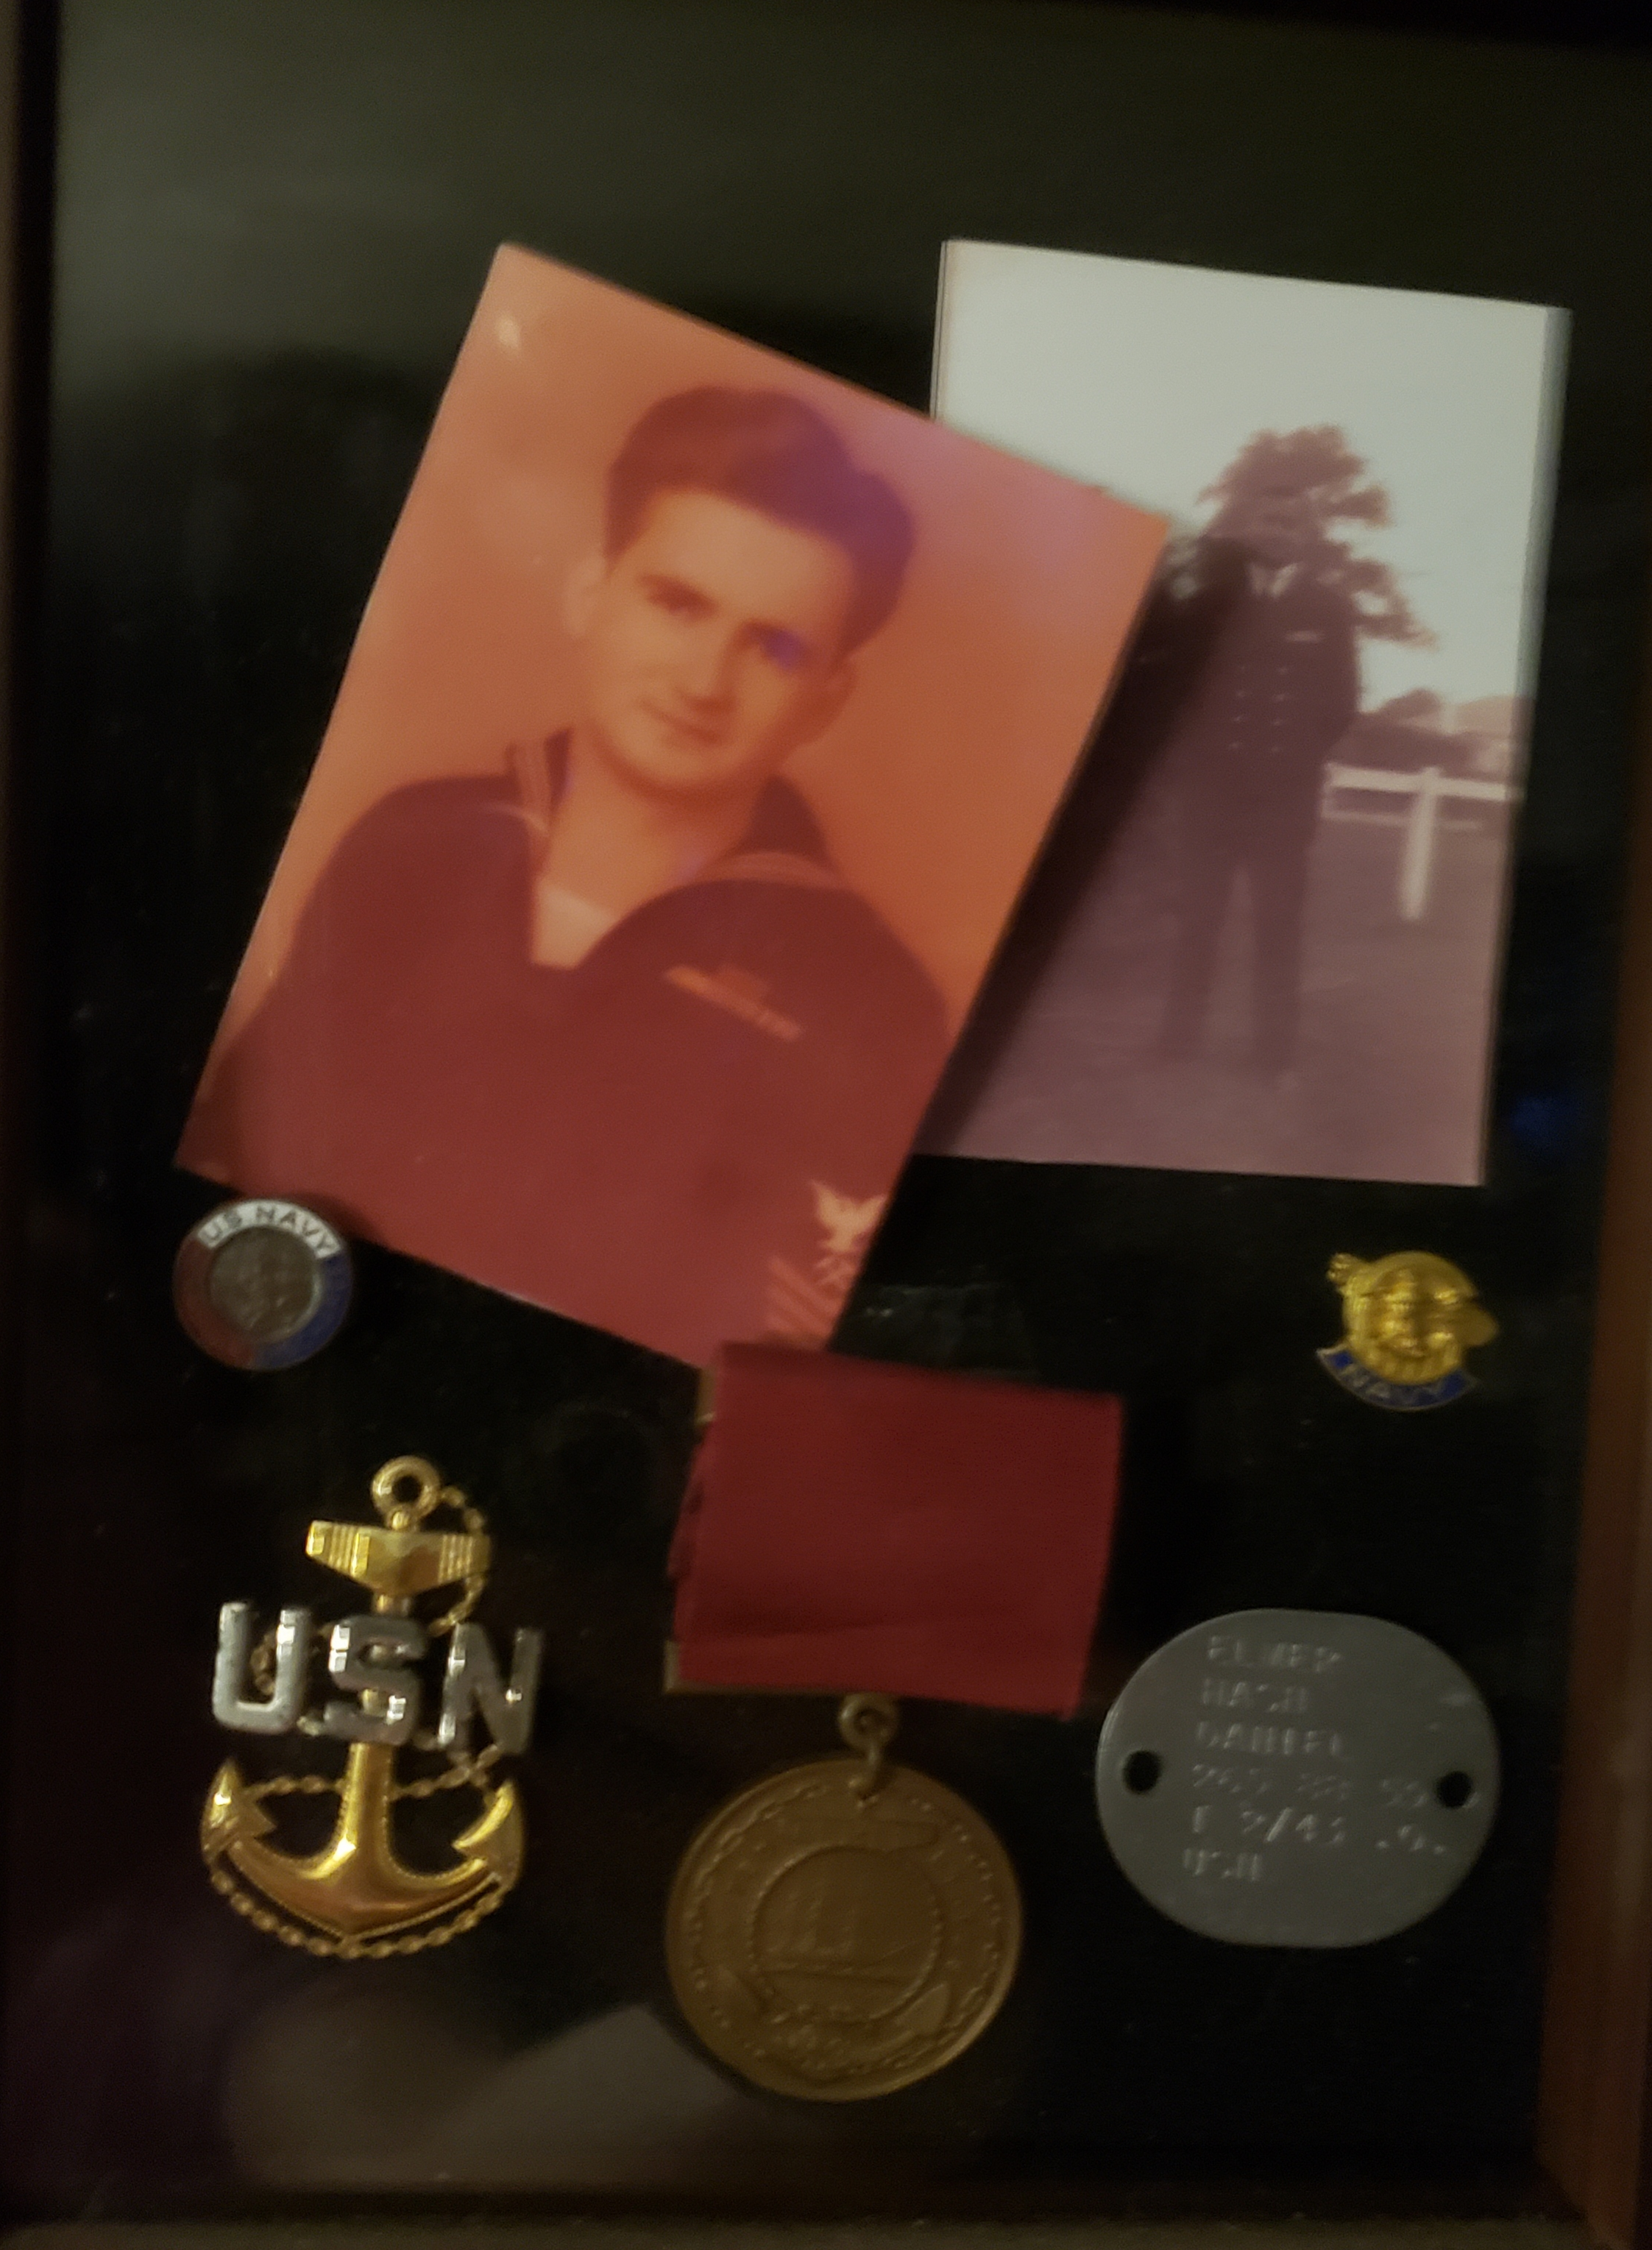 Elmer Daniel picture and medals collection